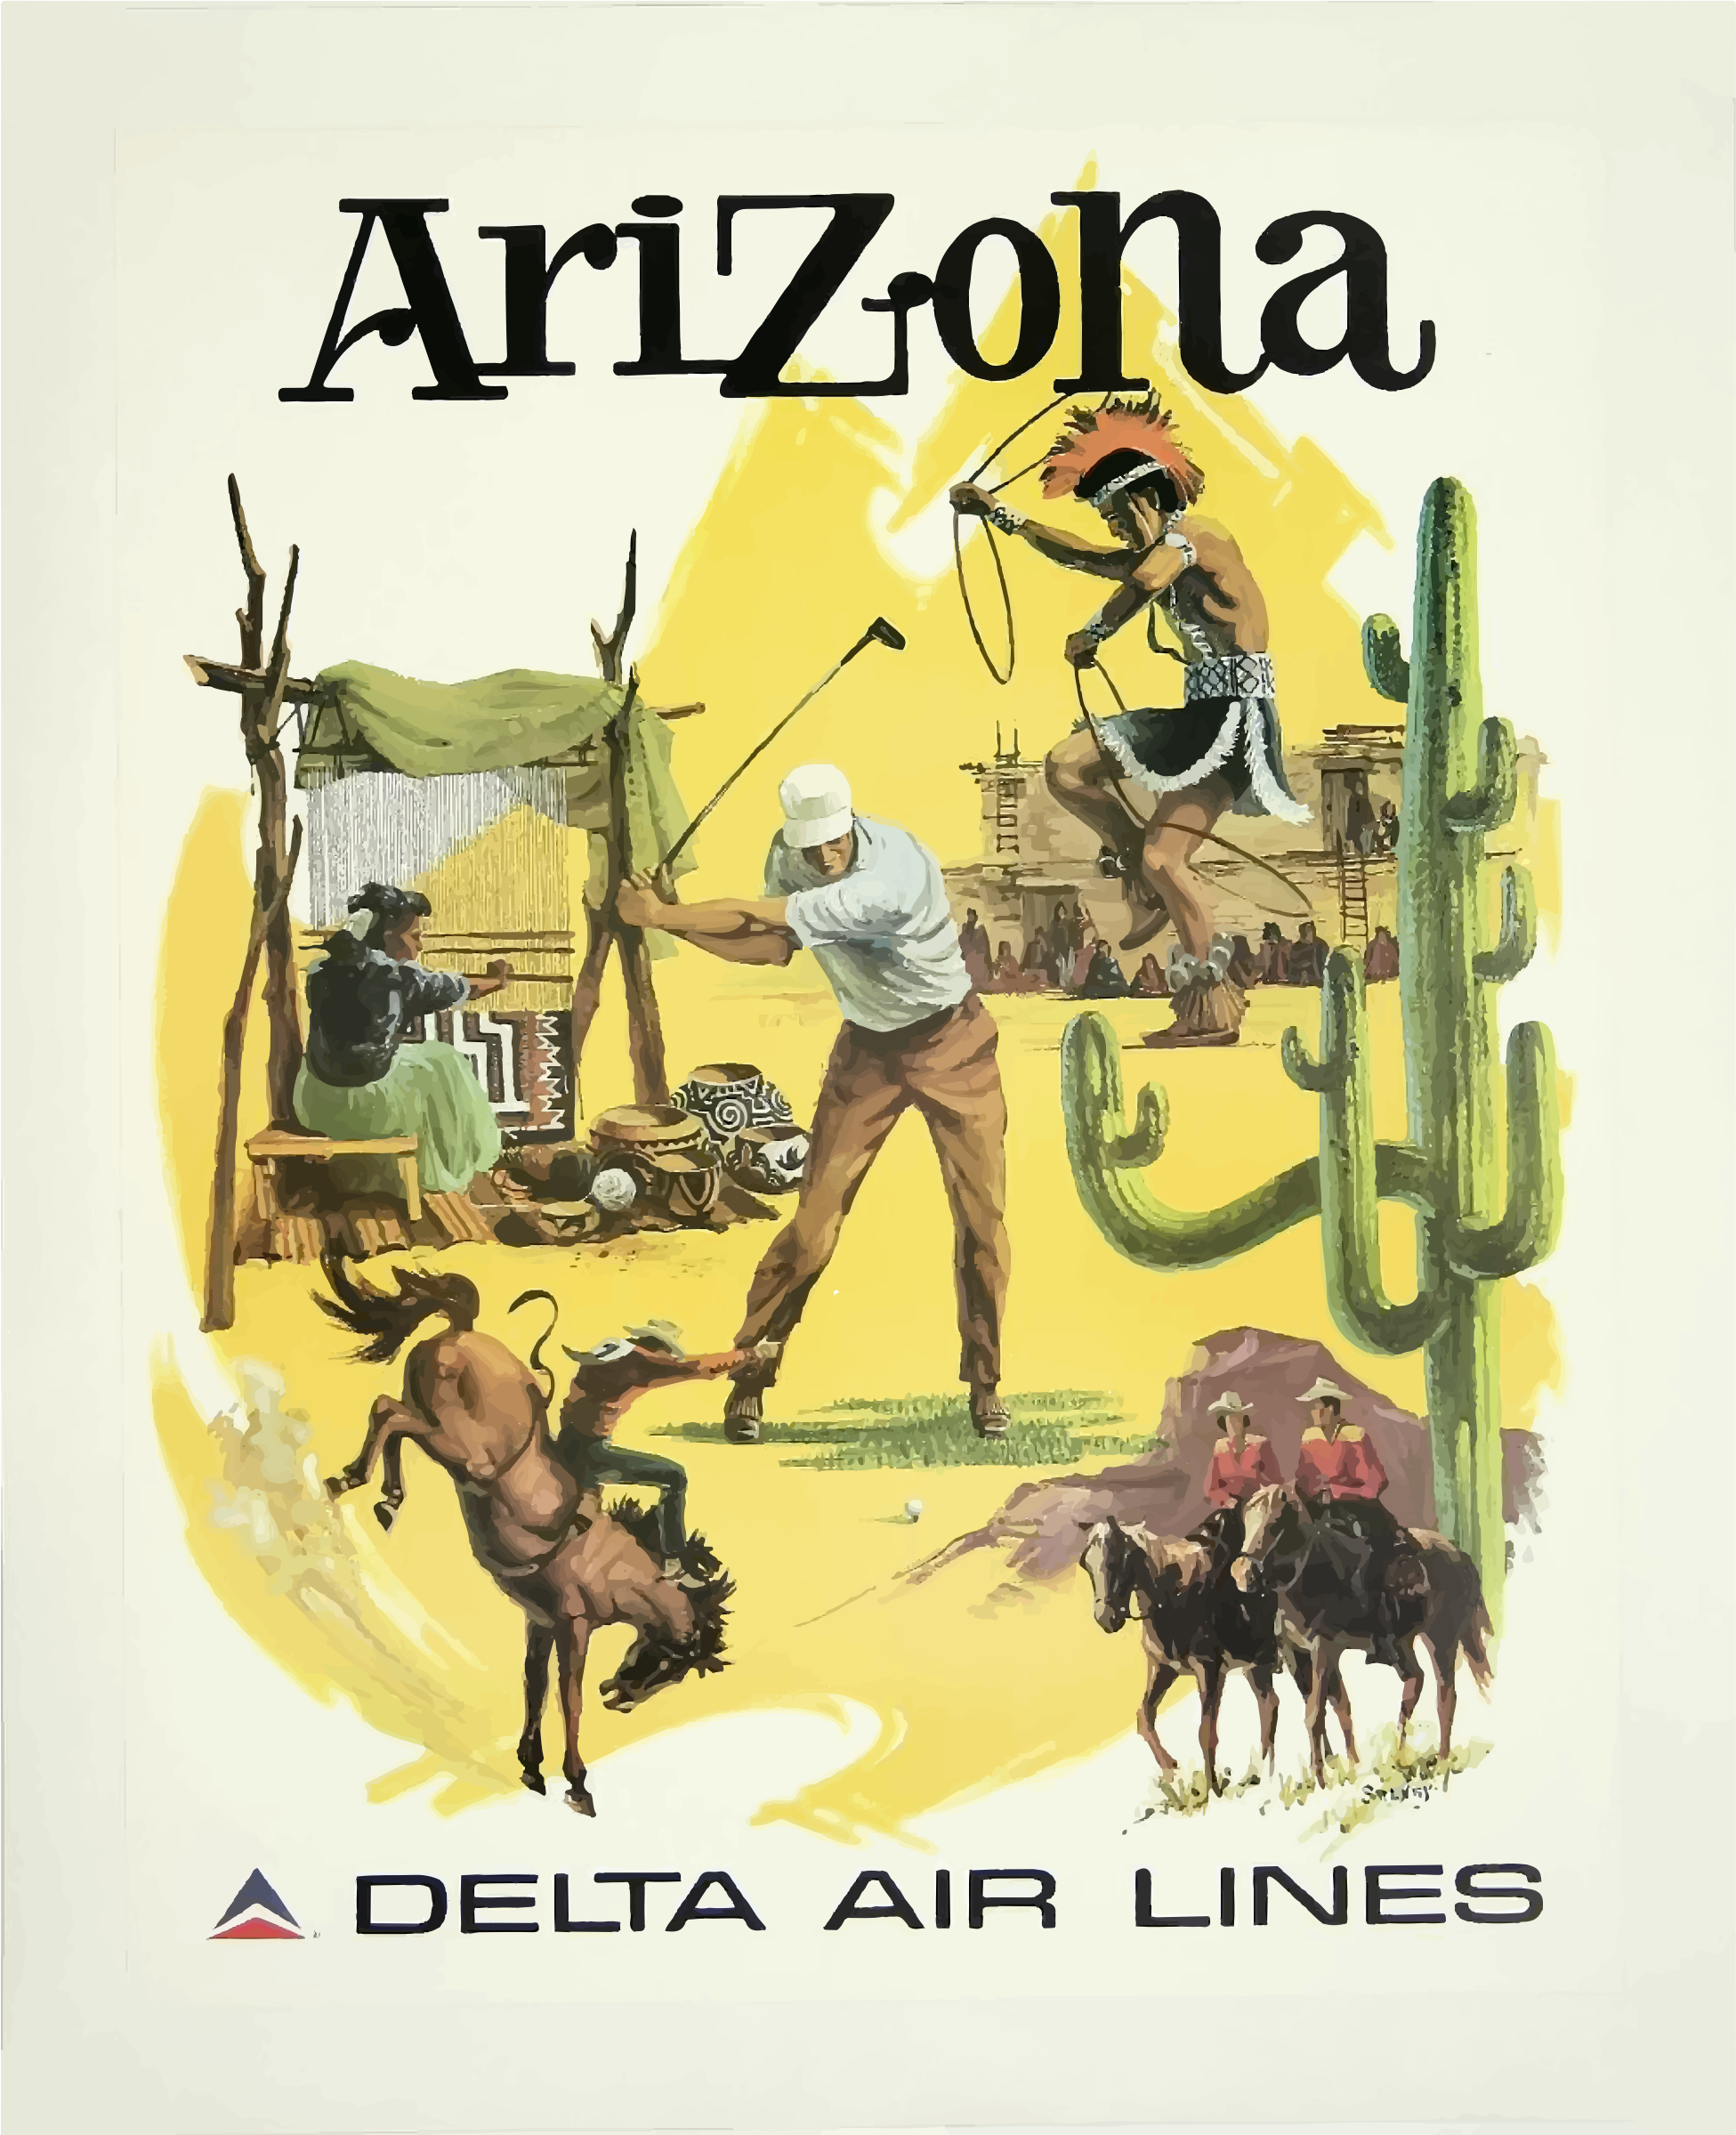 Vintage Travel Poster Arizona 2 by GDJ